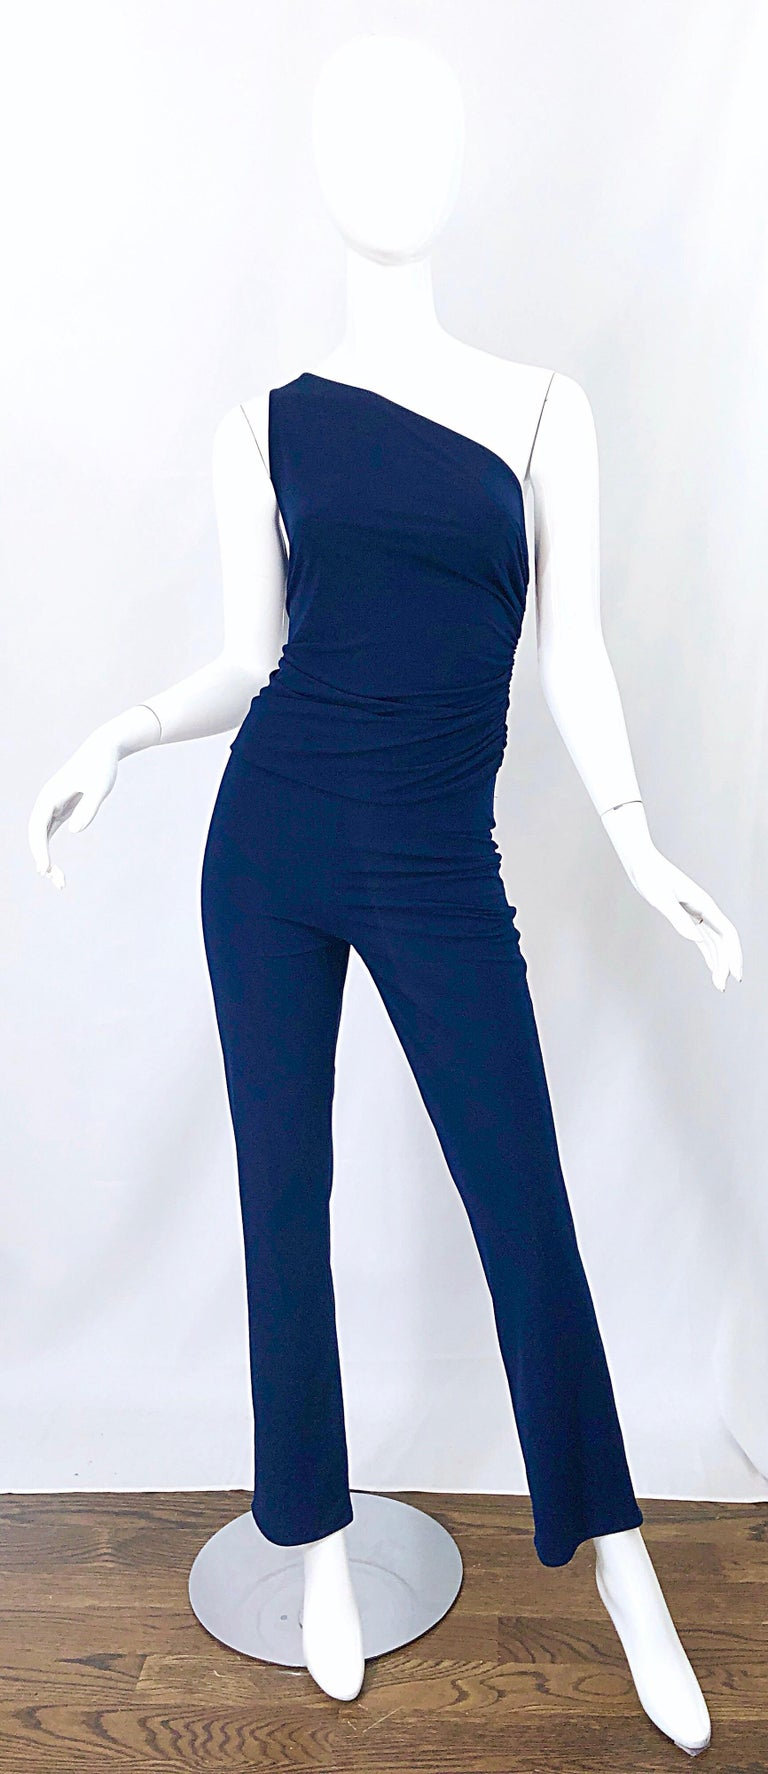 Amazing vintage NORMA KAMALI OMO early 1980s navy blue one shoulder top and trosuers! Looks like a jumpsuit, but better! Soft stretch jersey stretches to fit, and the ruched details on the top is super flattering. Top simply slips over the head.